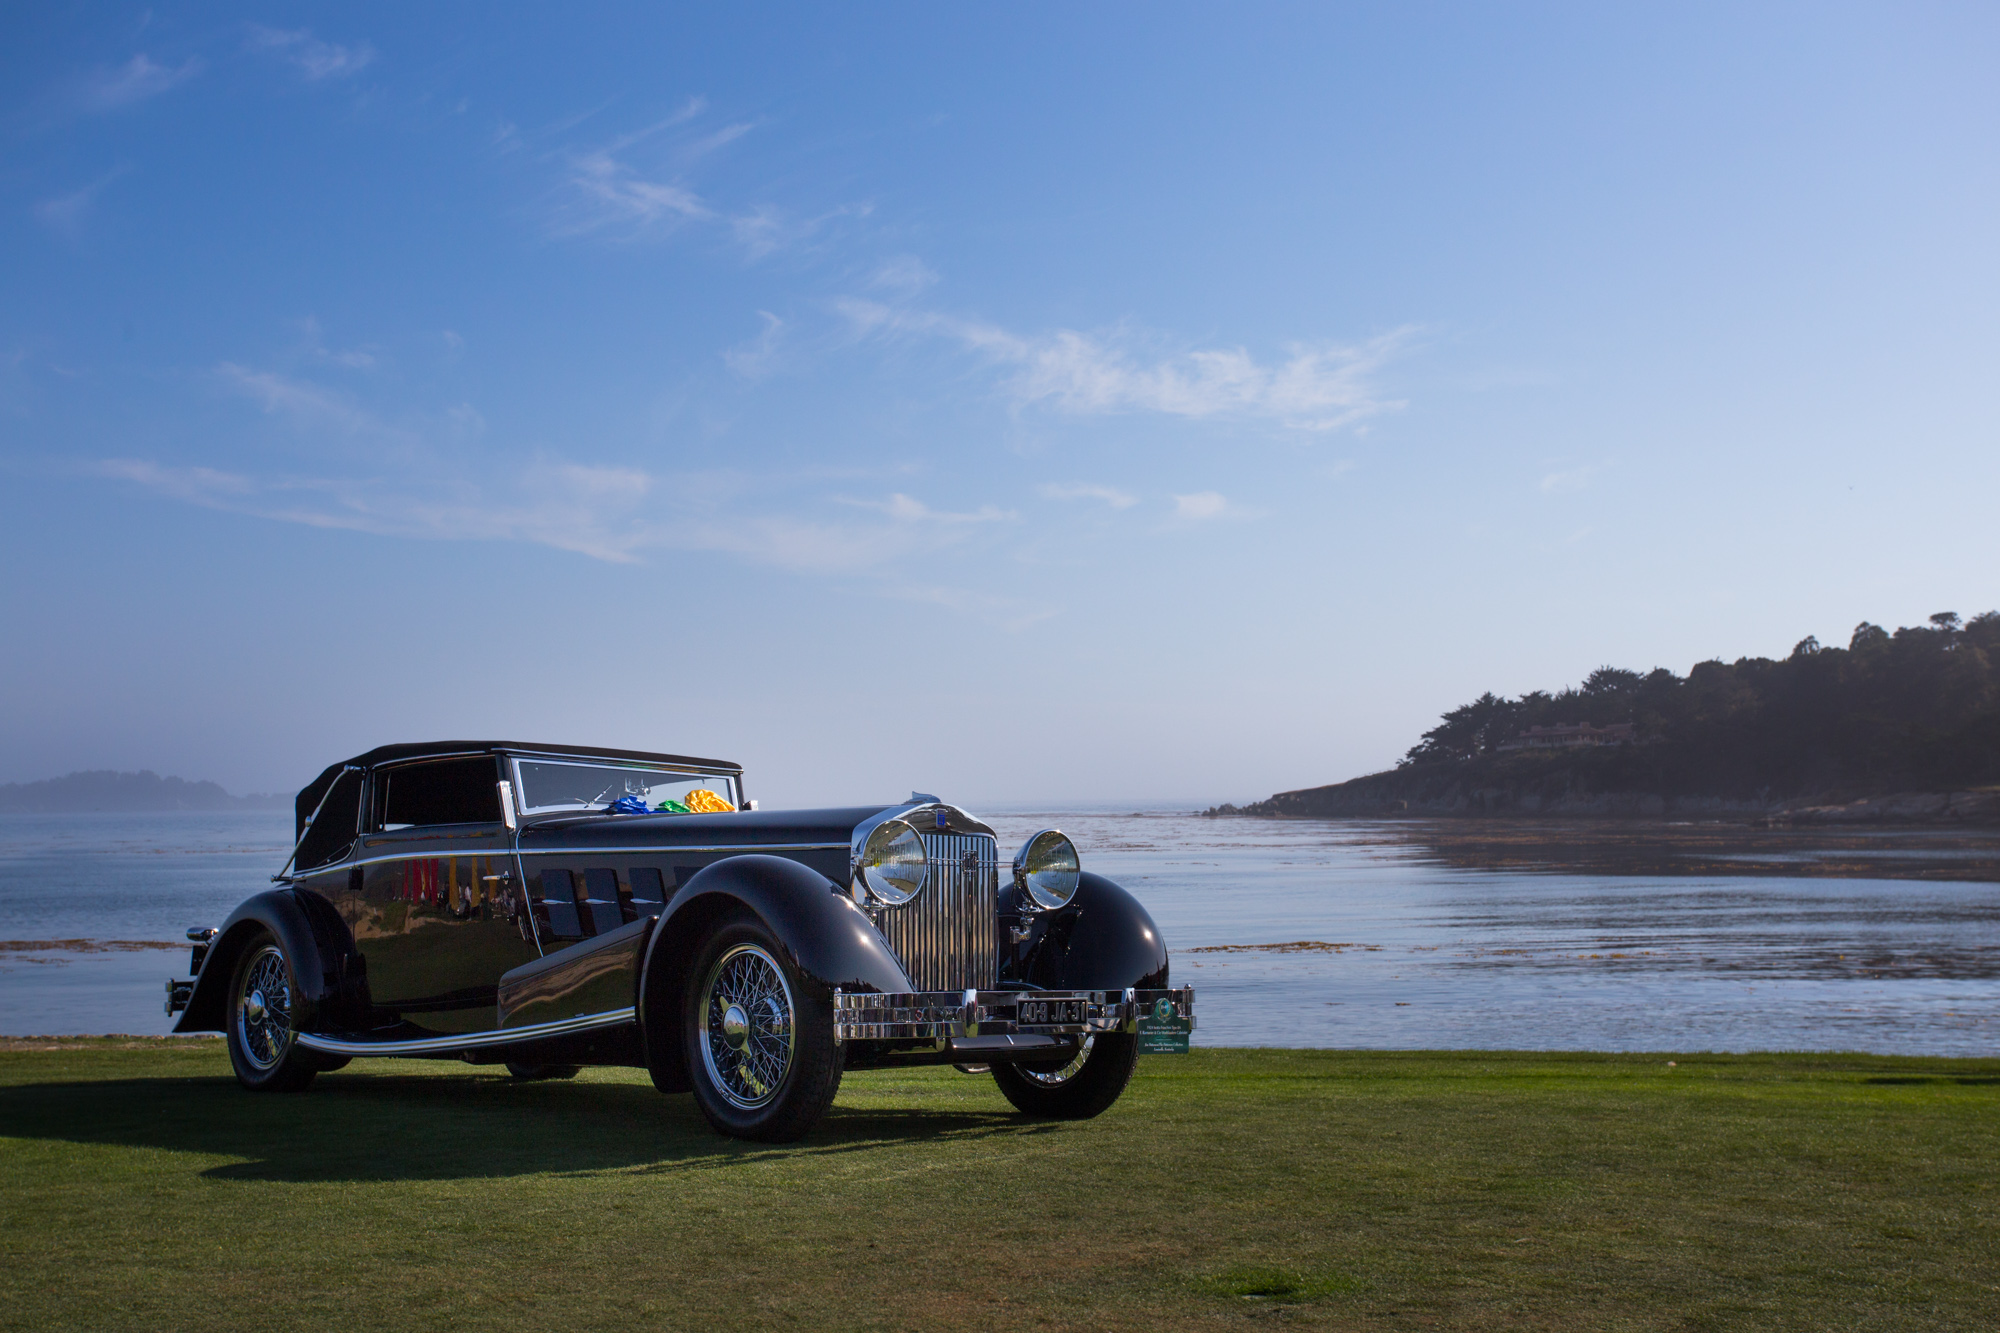 Car Week on The Monterey Peninsula - List of Events including Pebble Beach Concours d'Elegance, auctions, races and car shows